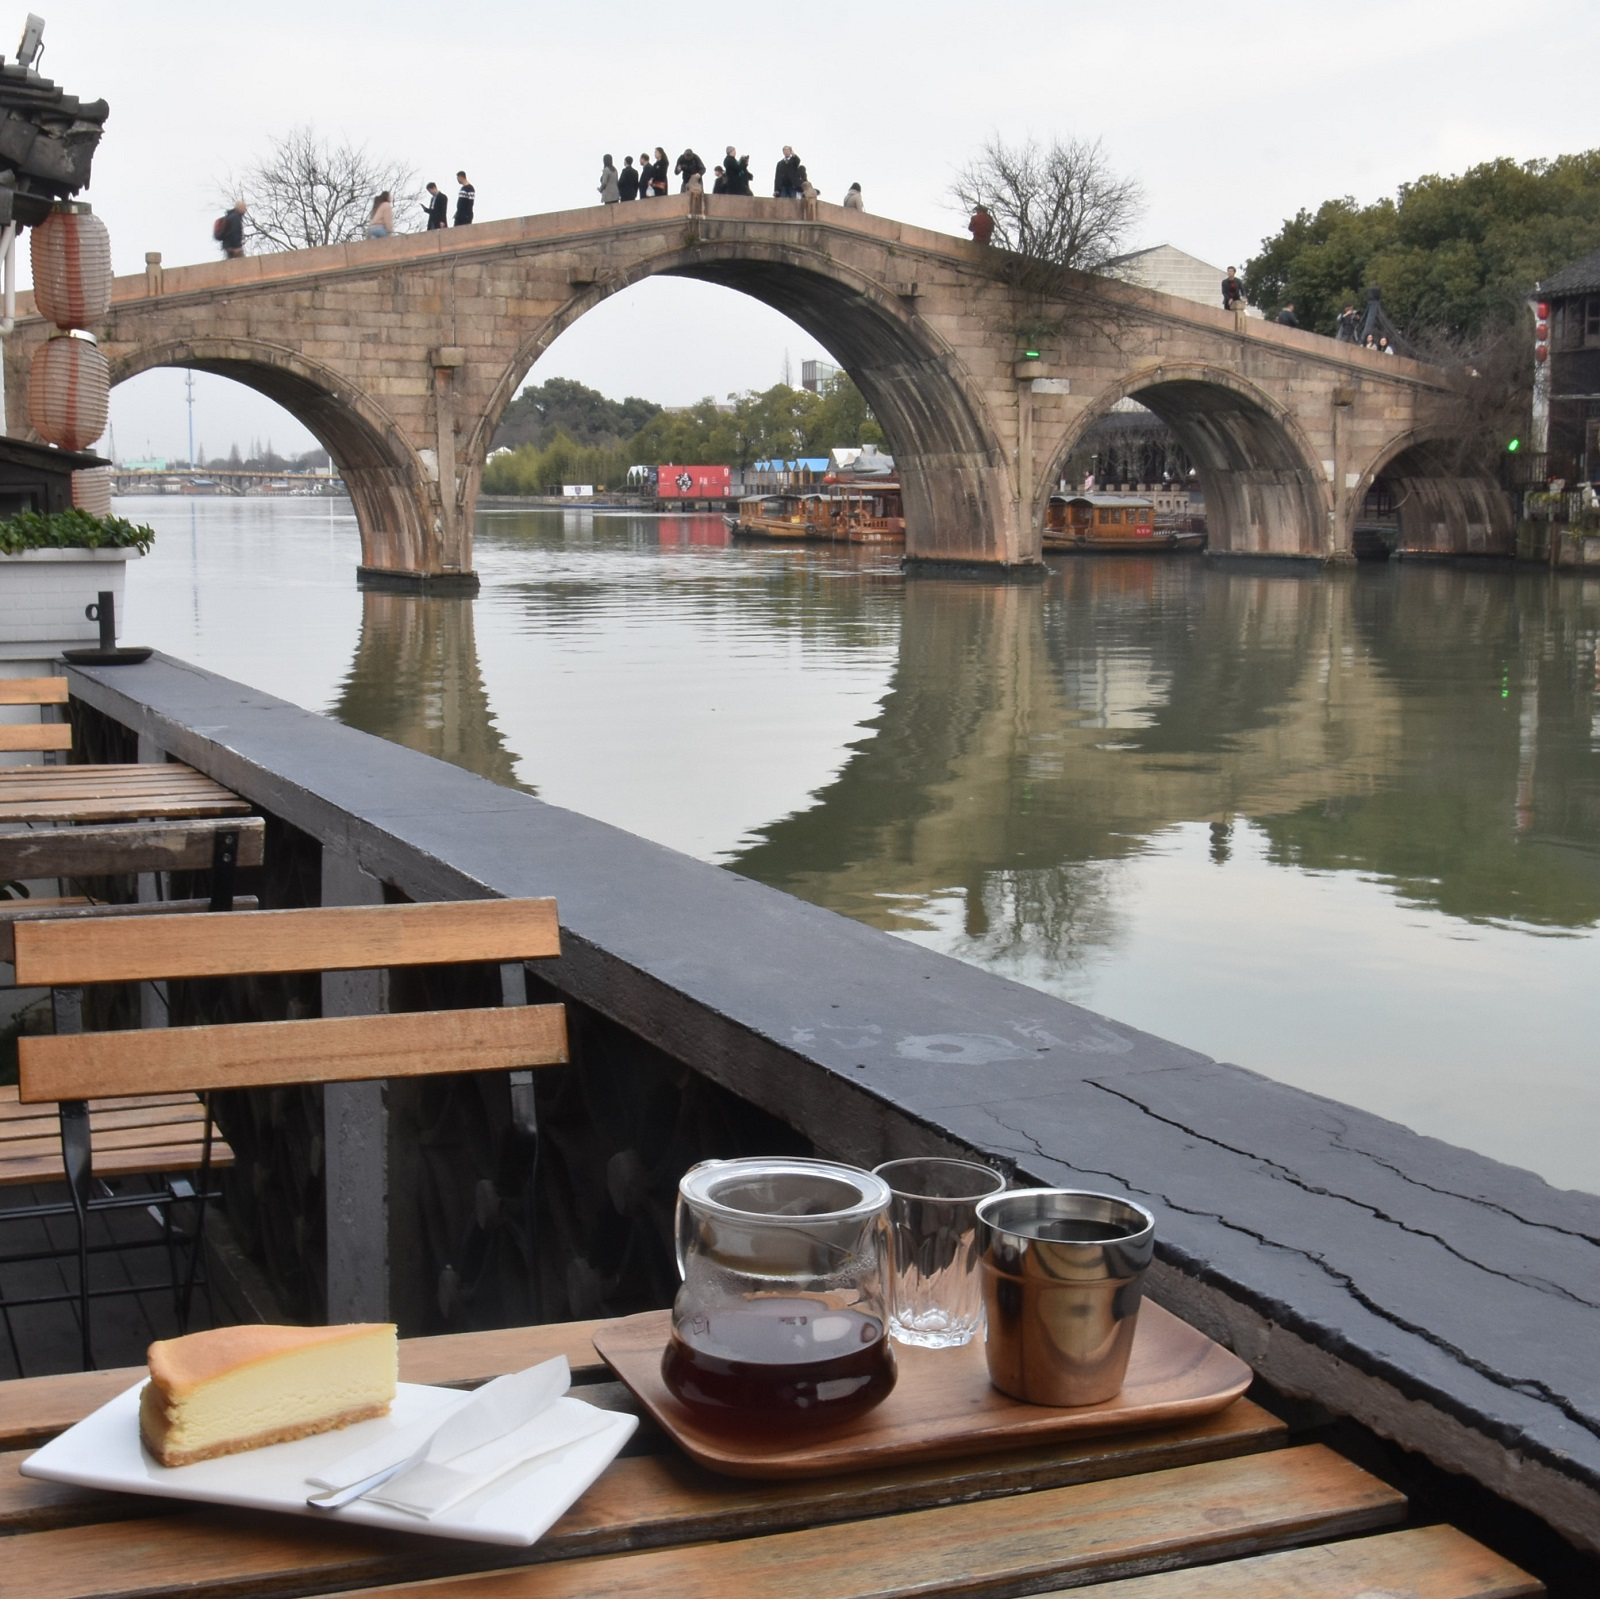 My coffee, overlooking the five stone arches of Fangsheng Bridge in Zhujiajiao from the back terrace of The Point.